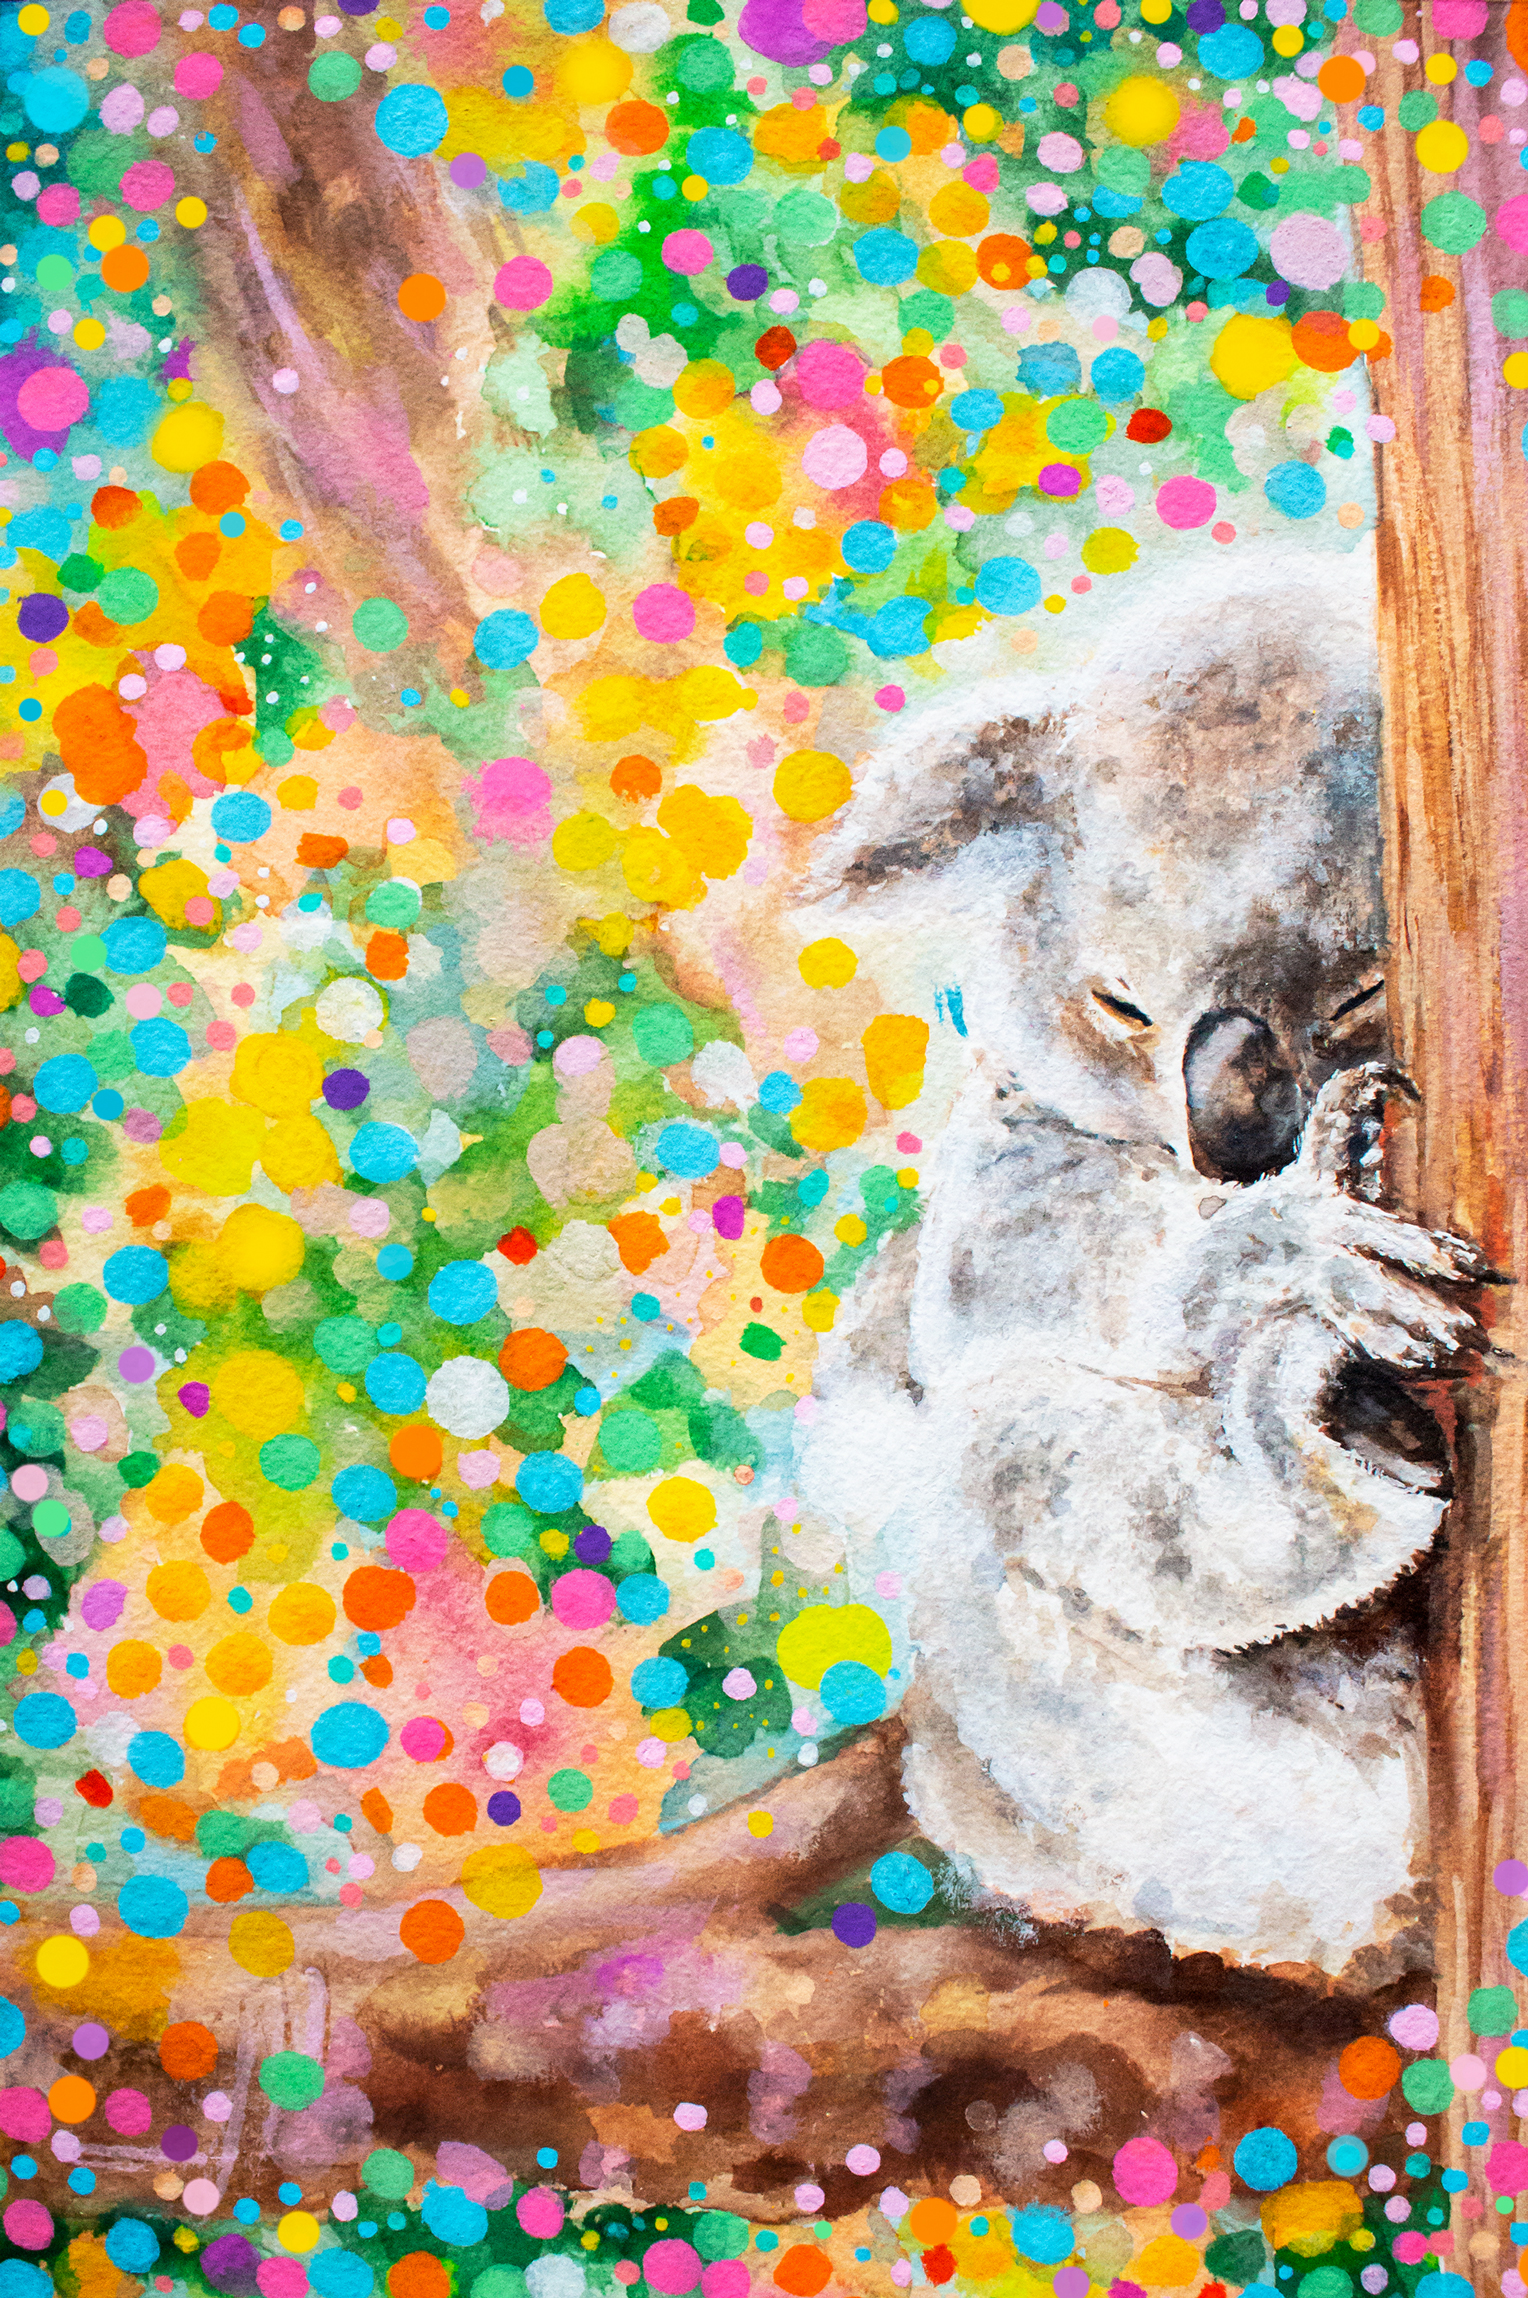 'dreaming Of Better Days' All Proceeds From This Art Print Goes To Bushfire-Affected Wildlife.